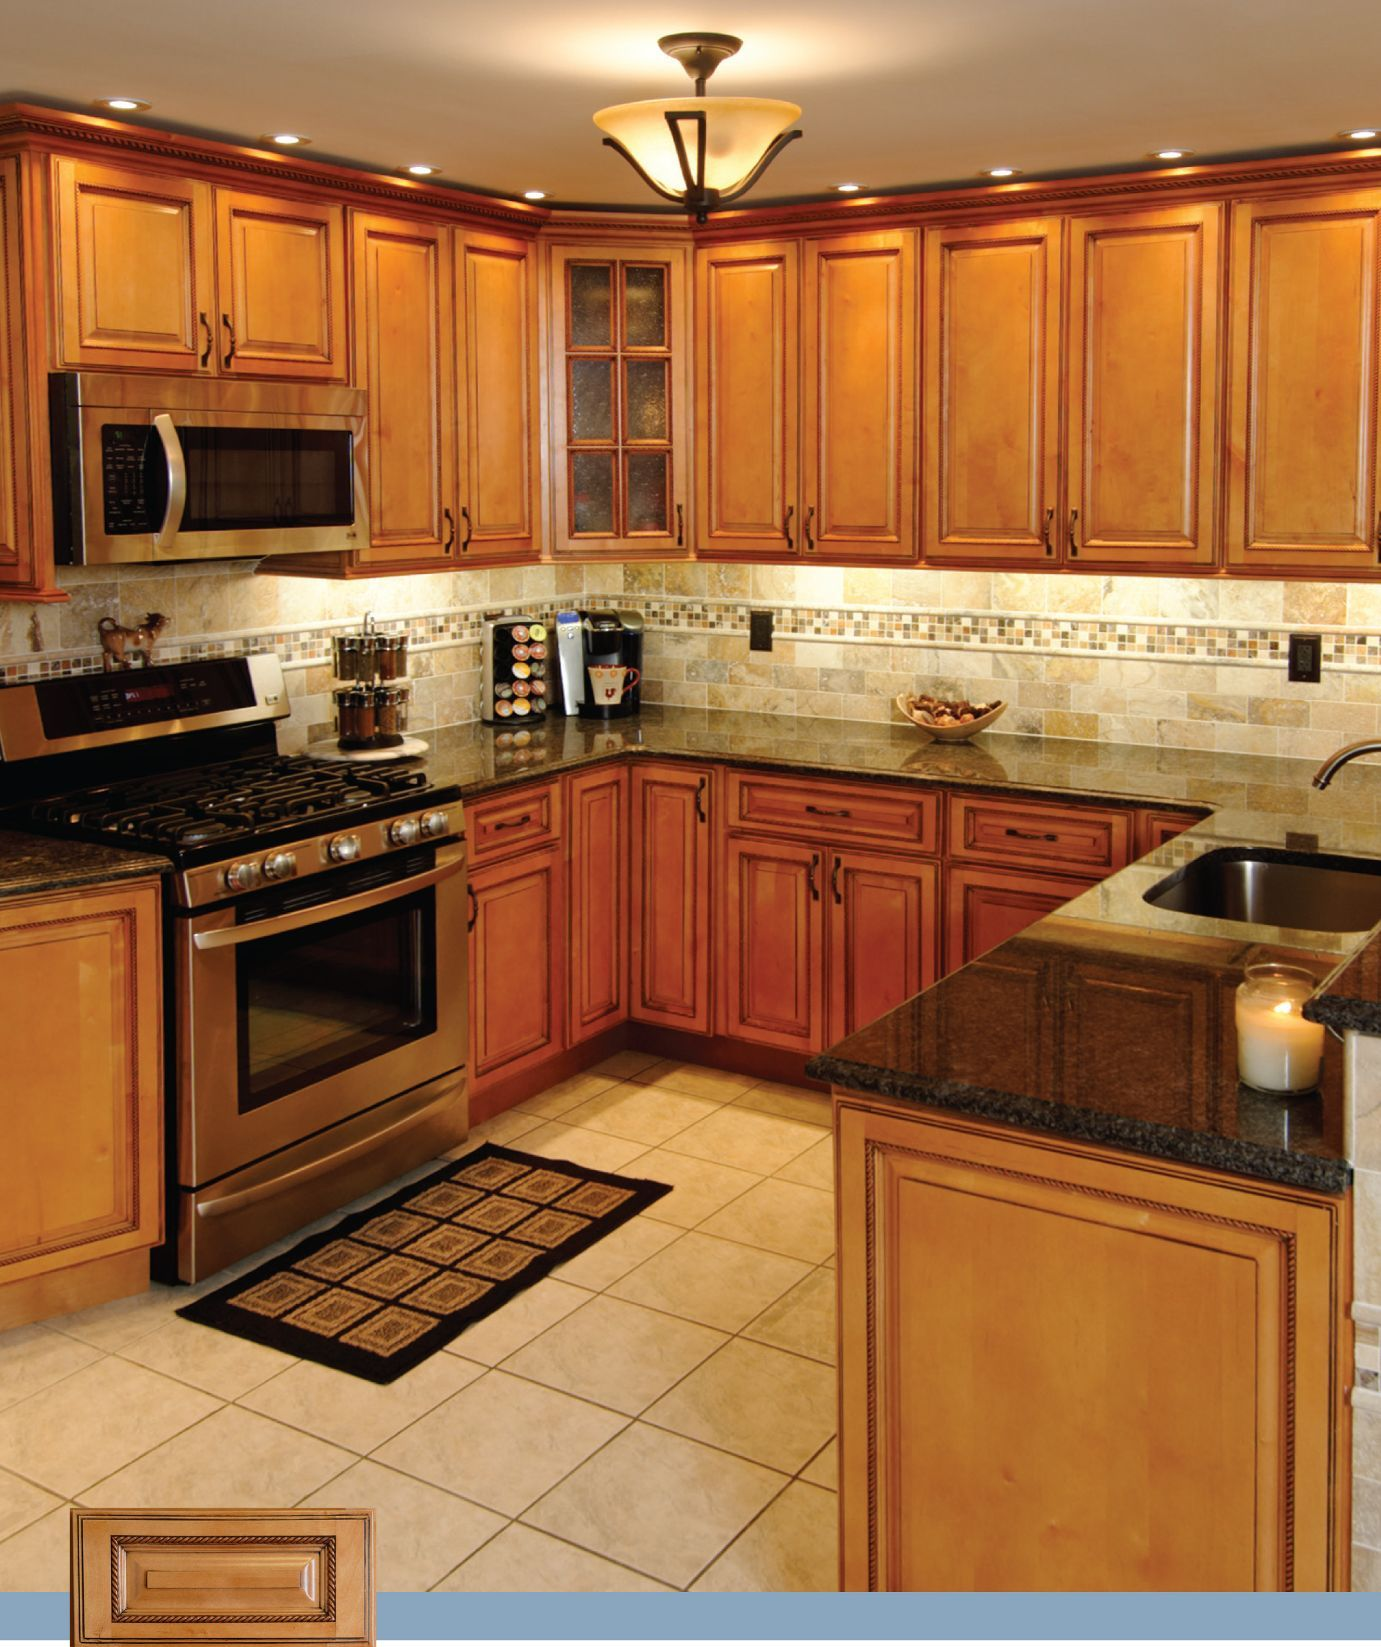 Google Image Result For Http://www.kitchencabinetdiscounts